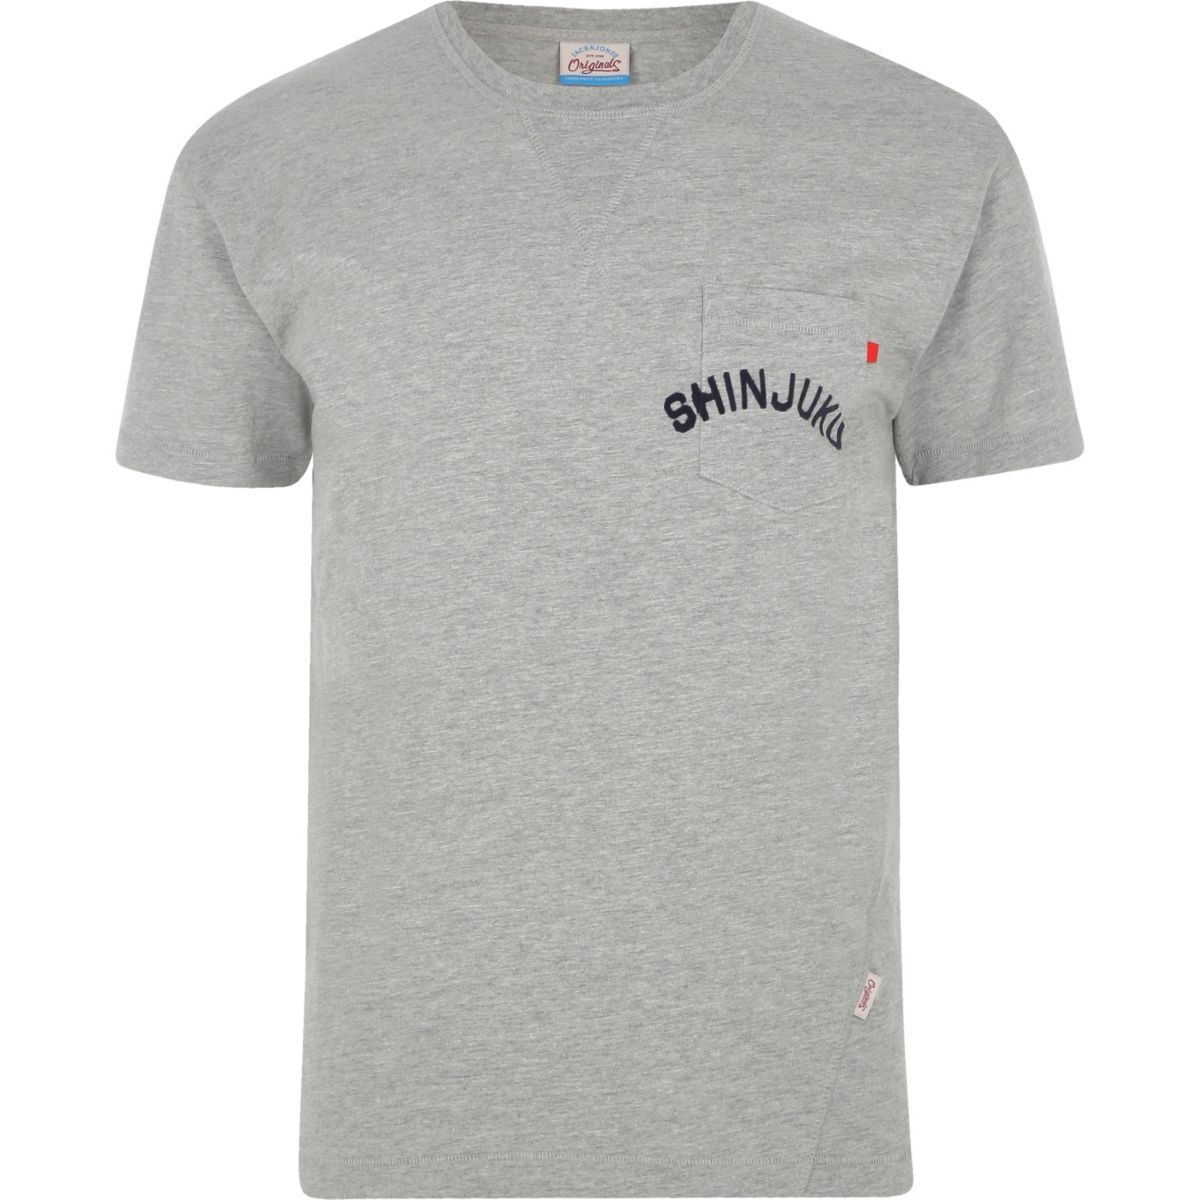 Grey marl Jack & Jones pocket print T-shirt